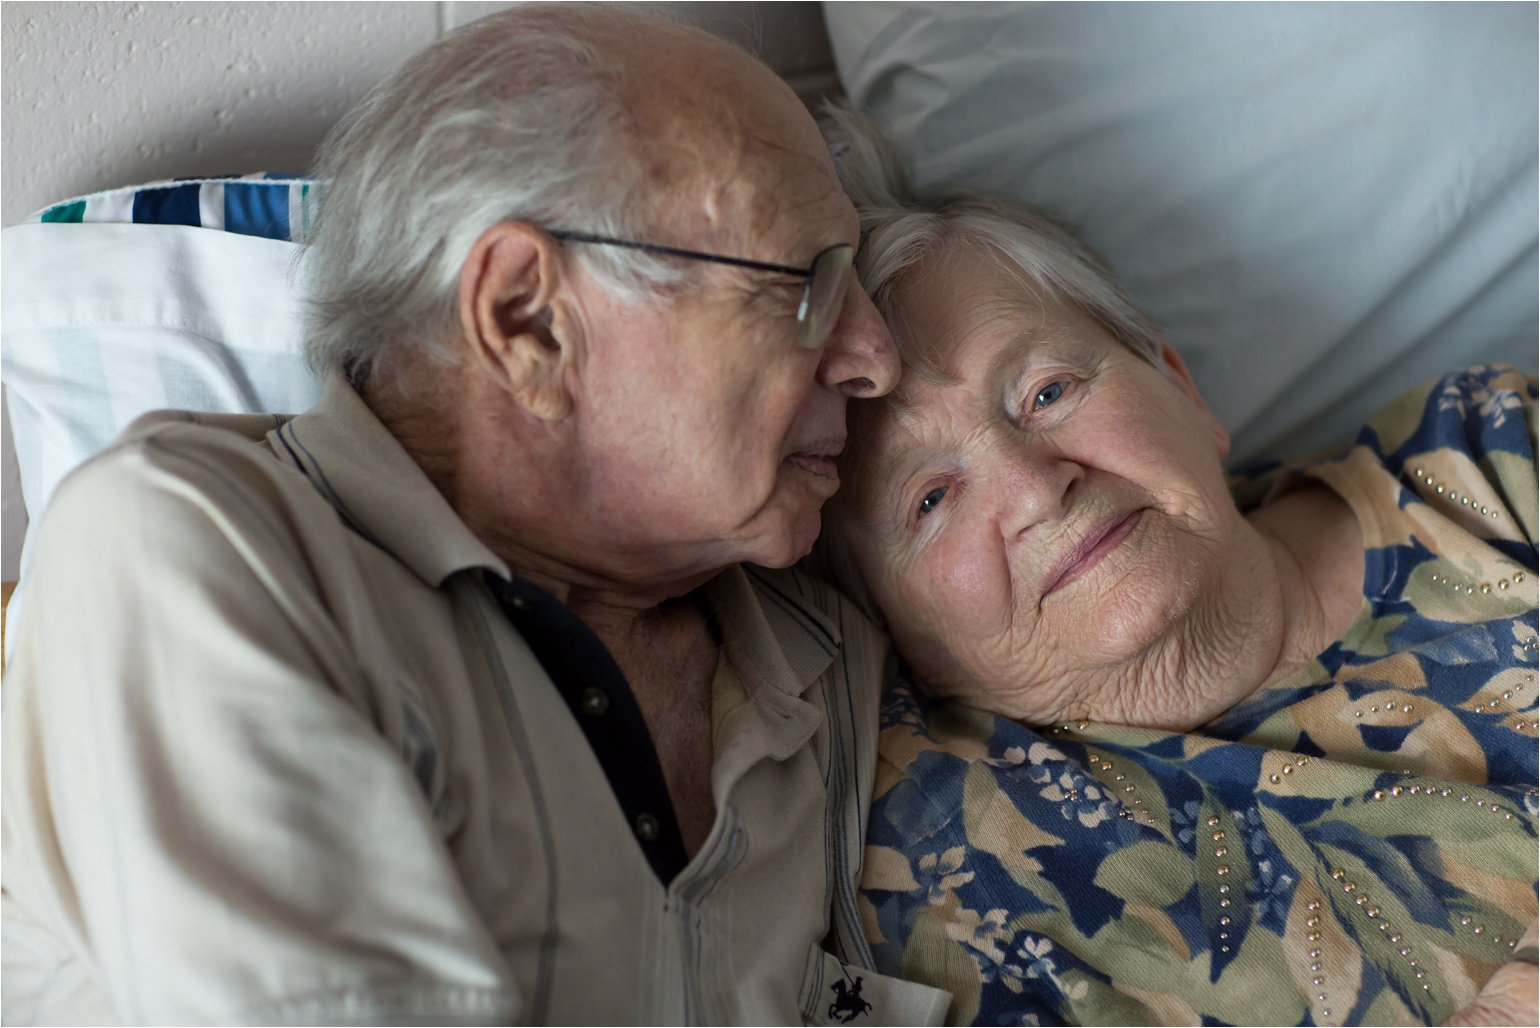 Elderly Couple on Bed (C) Maundy Mitchell